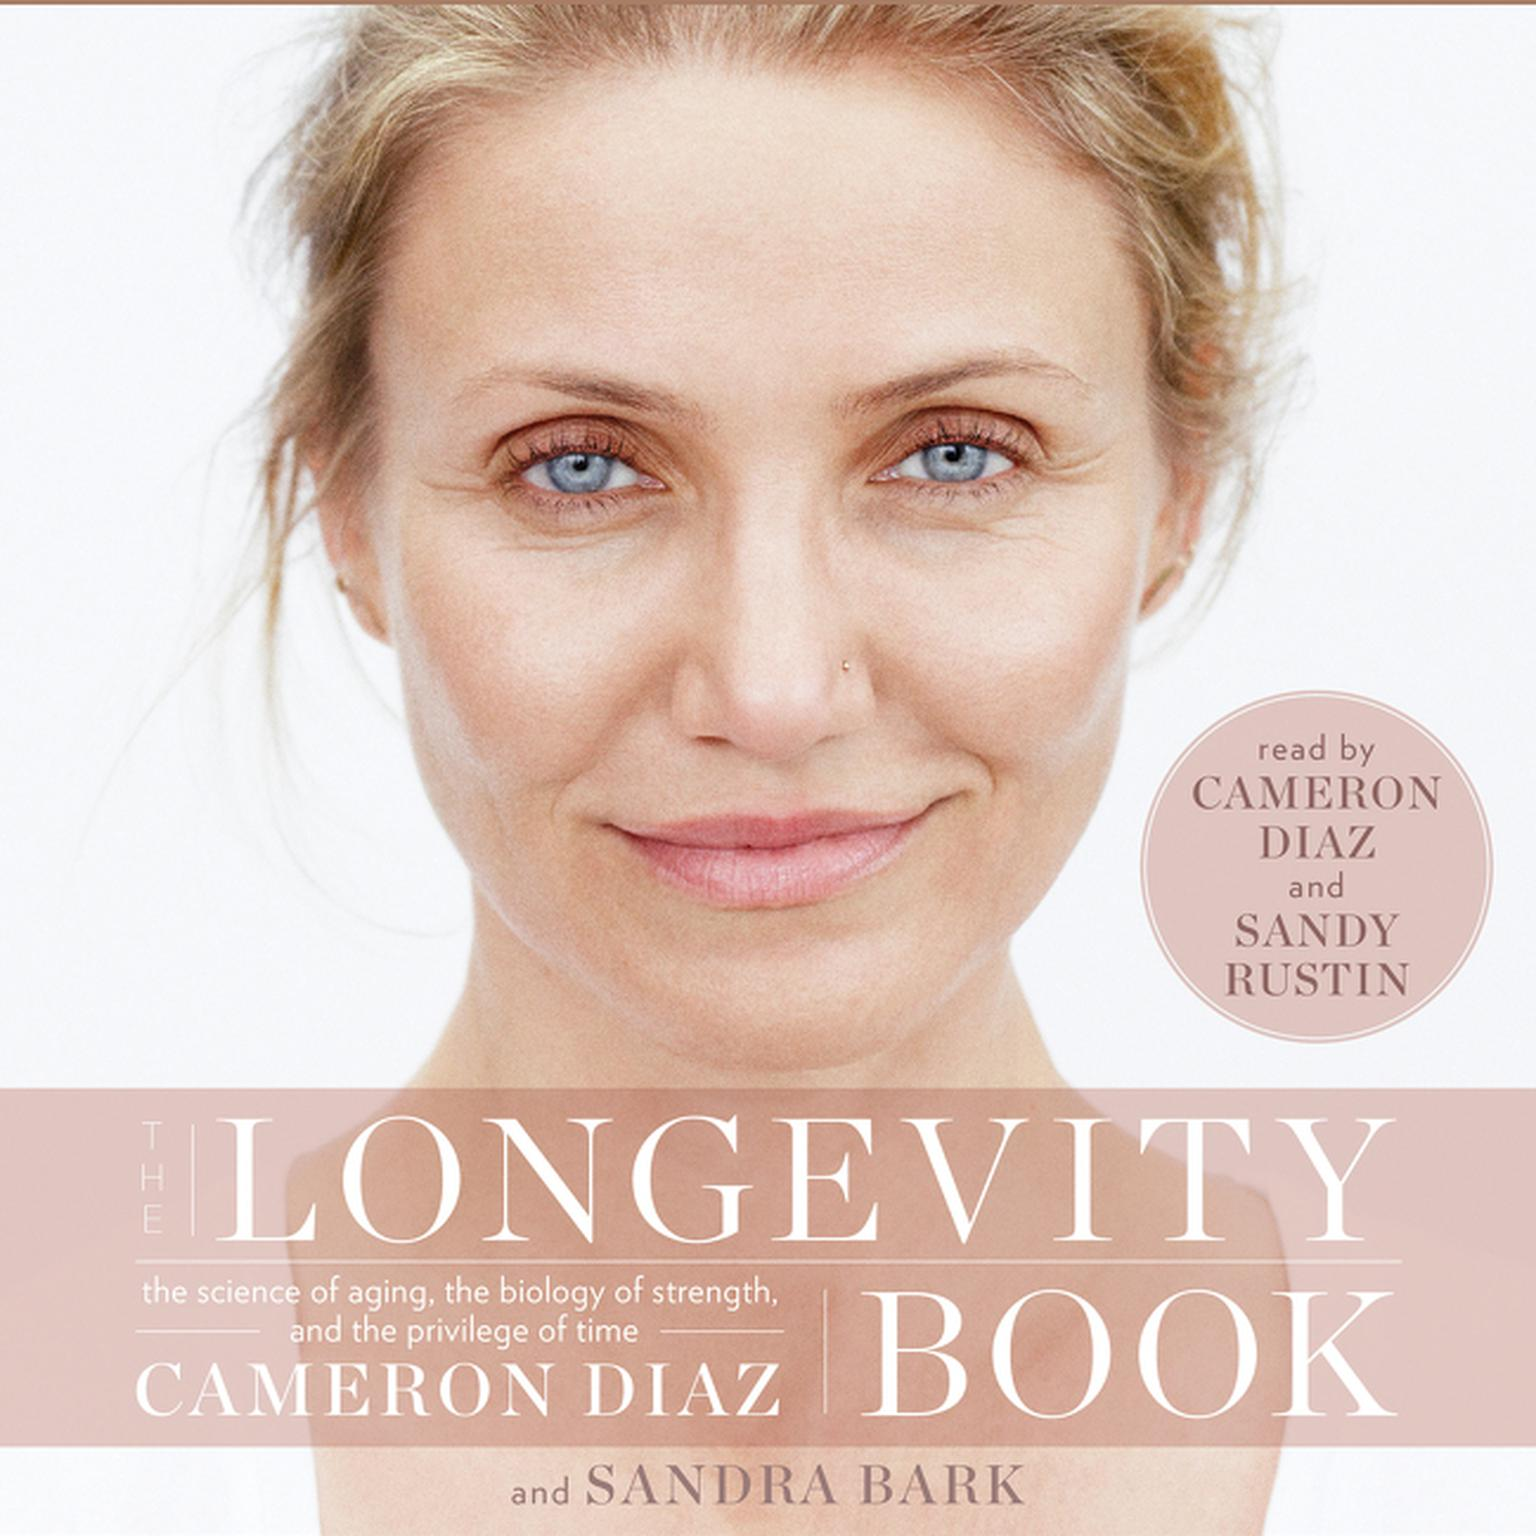 Printable The Longevity Book: The Science of Aging, the Biology of Strength, and the Privilege of Time Audiobook Cover Art